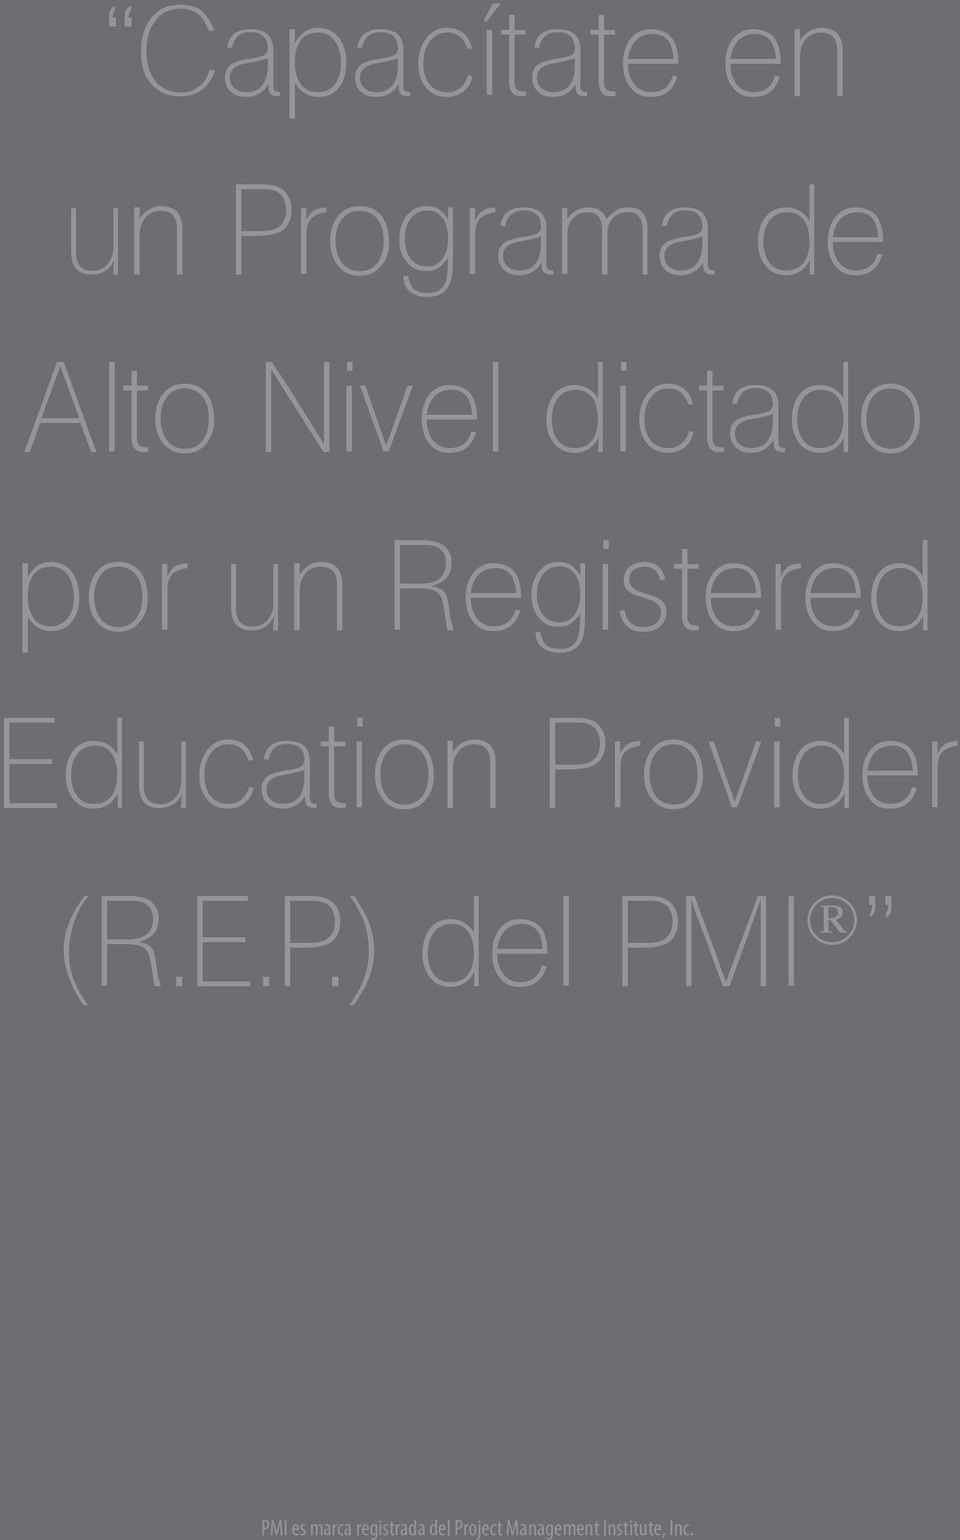 Registered Education Pr